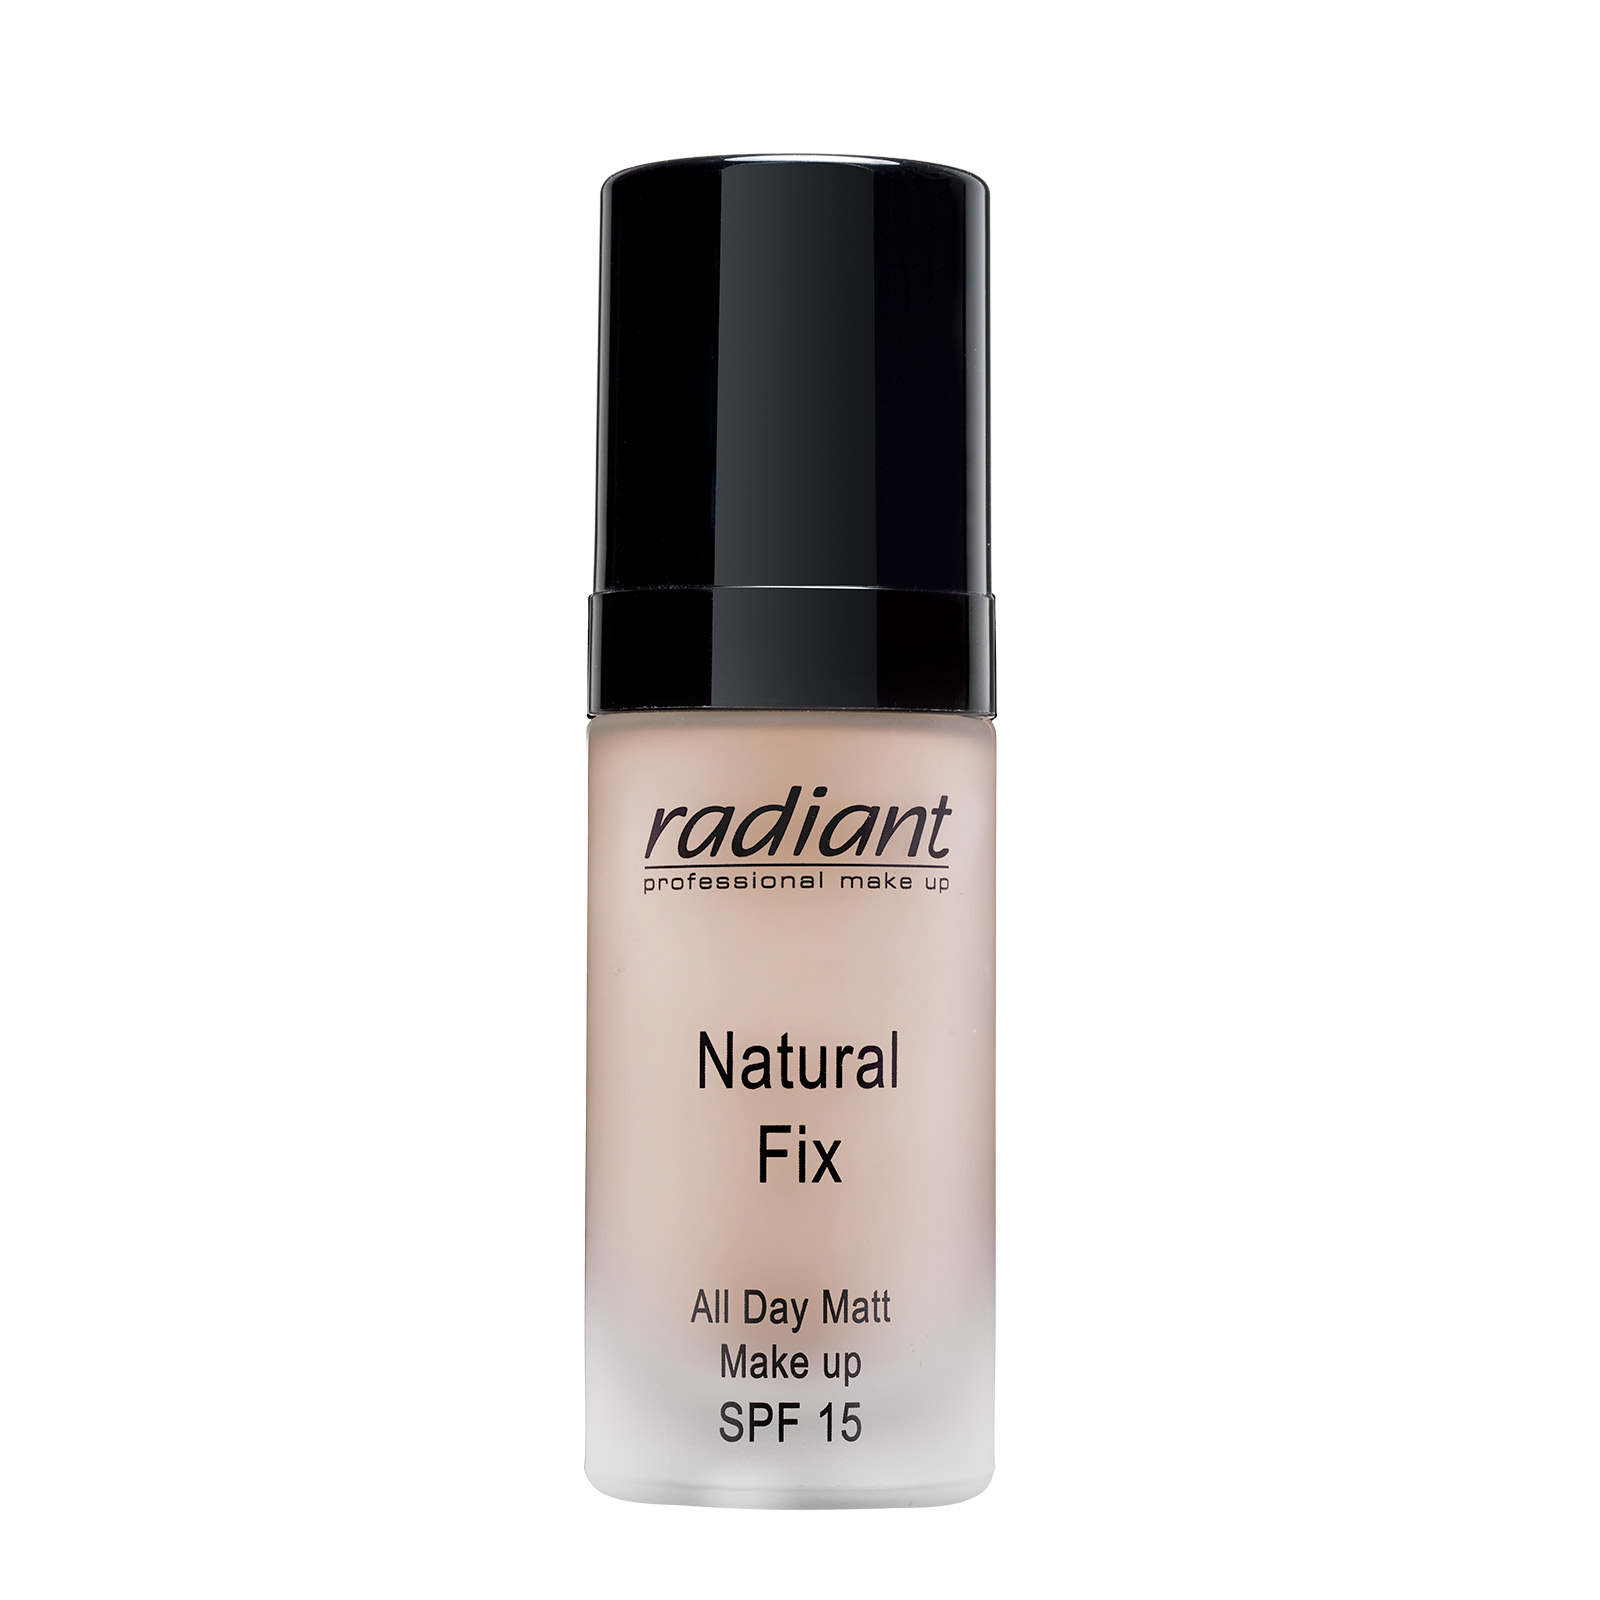 NATURAL FIX ALL DAY MATT MAKE UP SPF 15 (00 Alabaster)